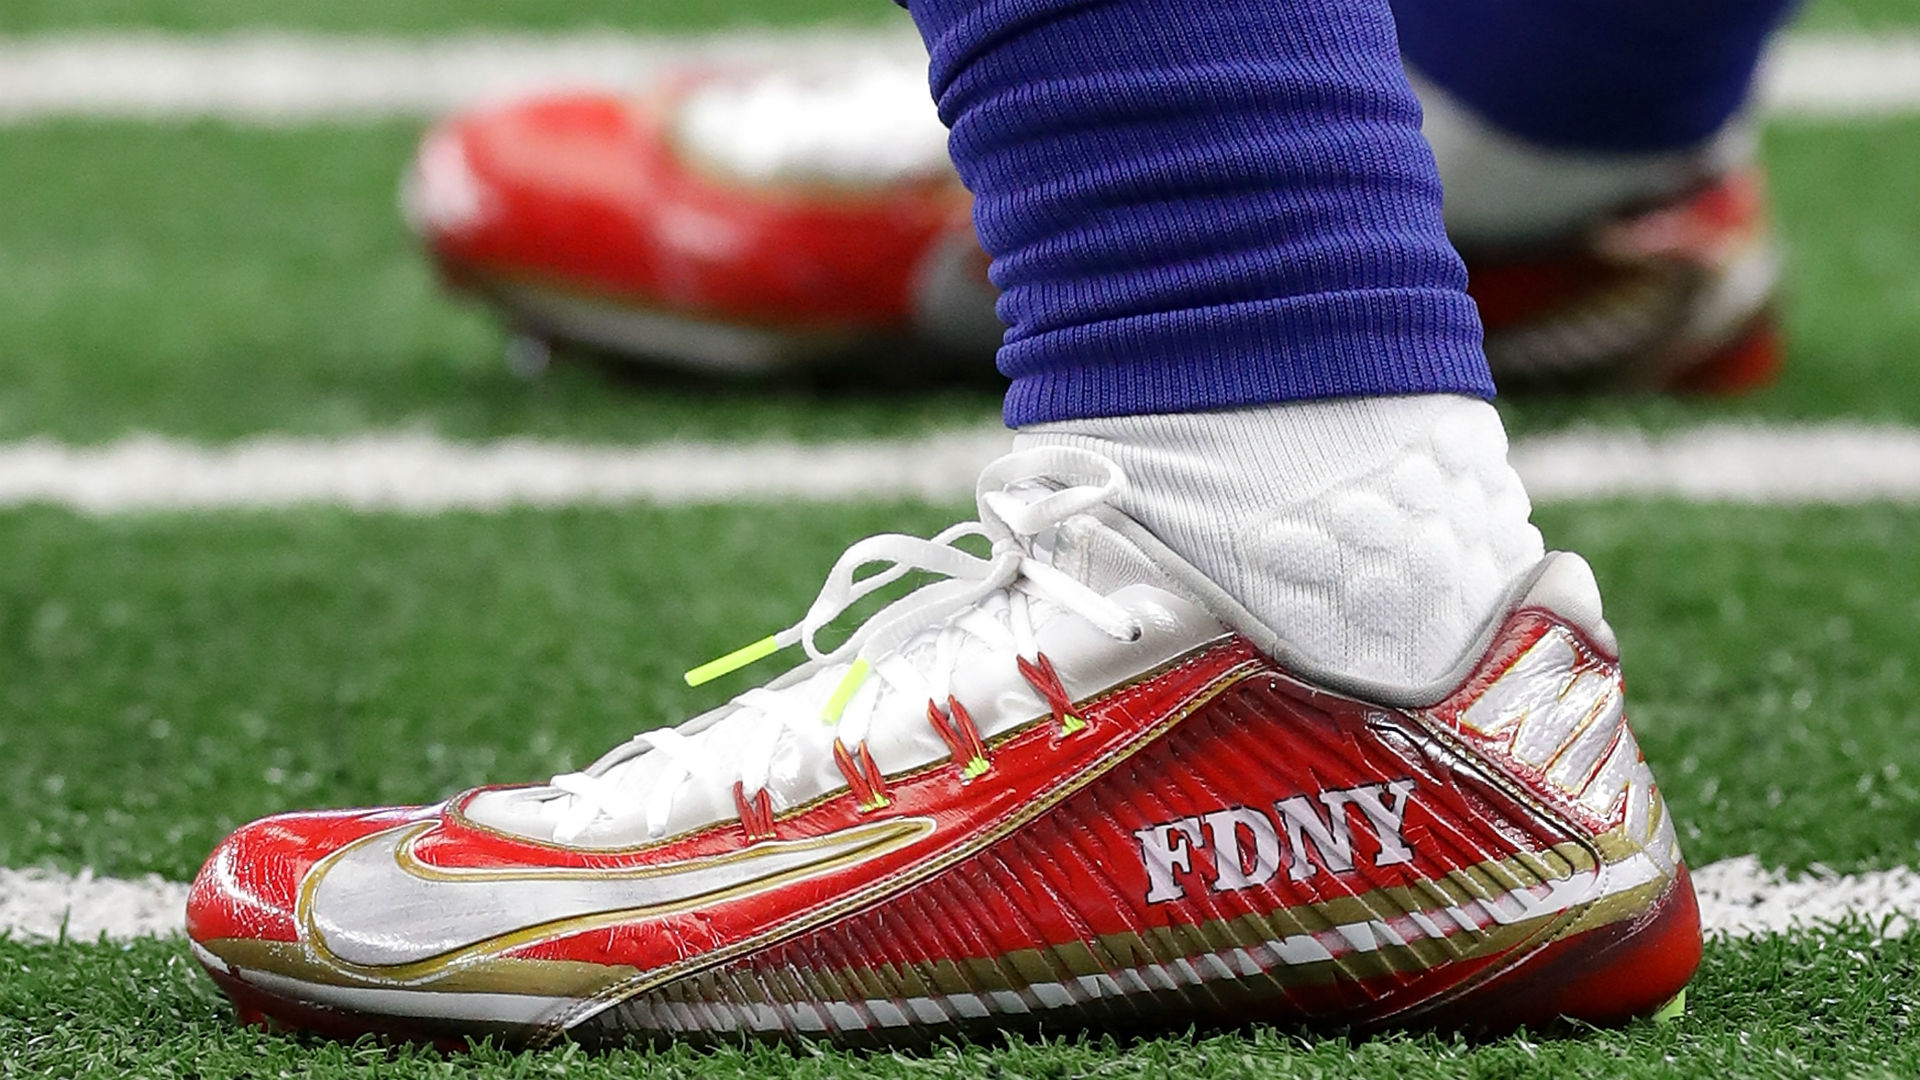 Many customized cleats in Sunday's NFL games were designed in ...